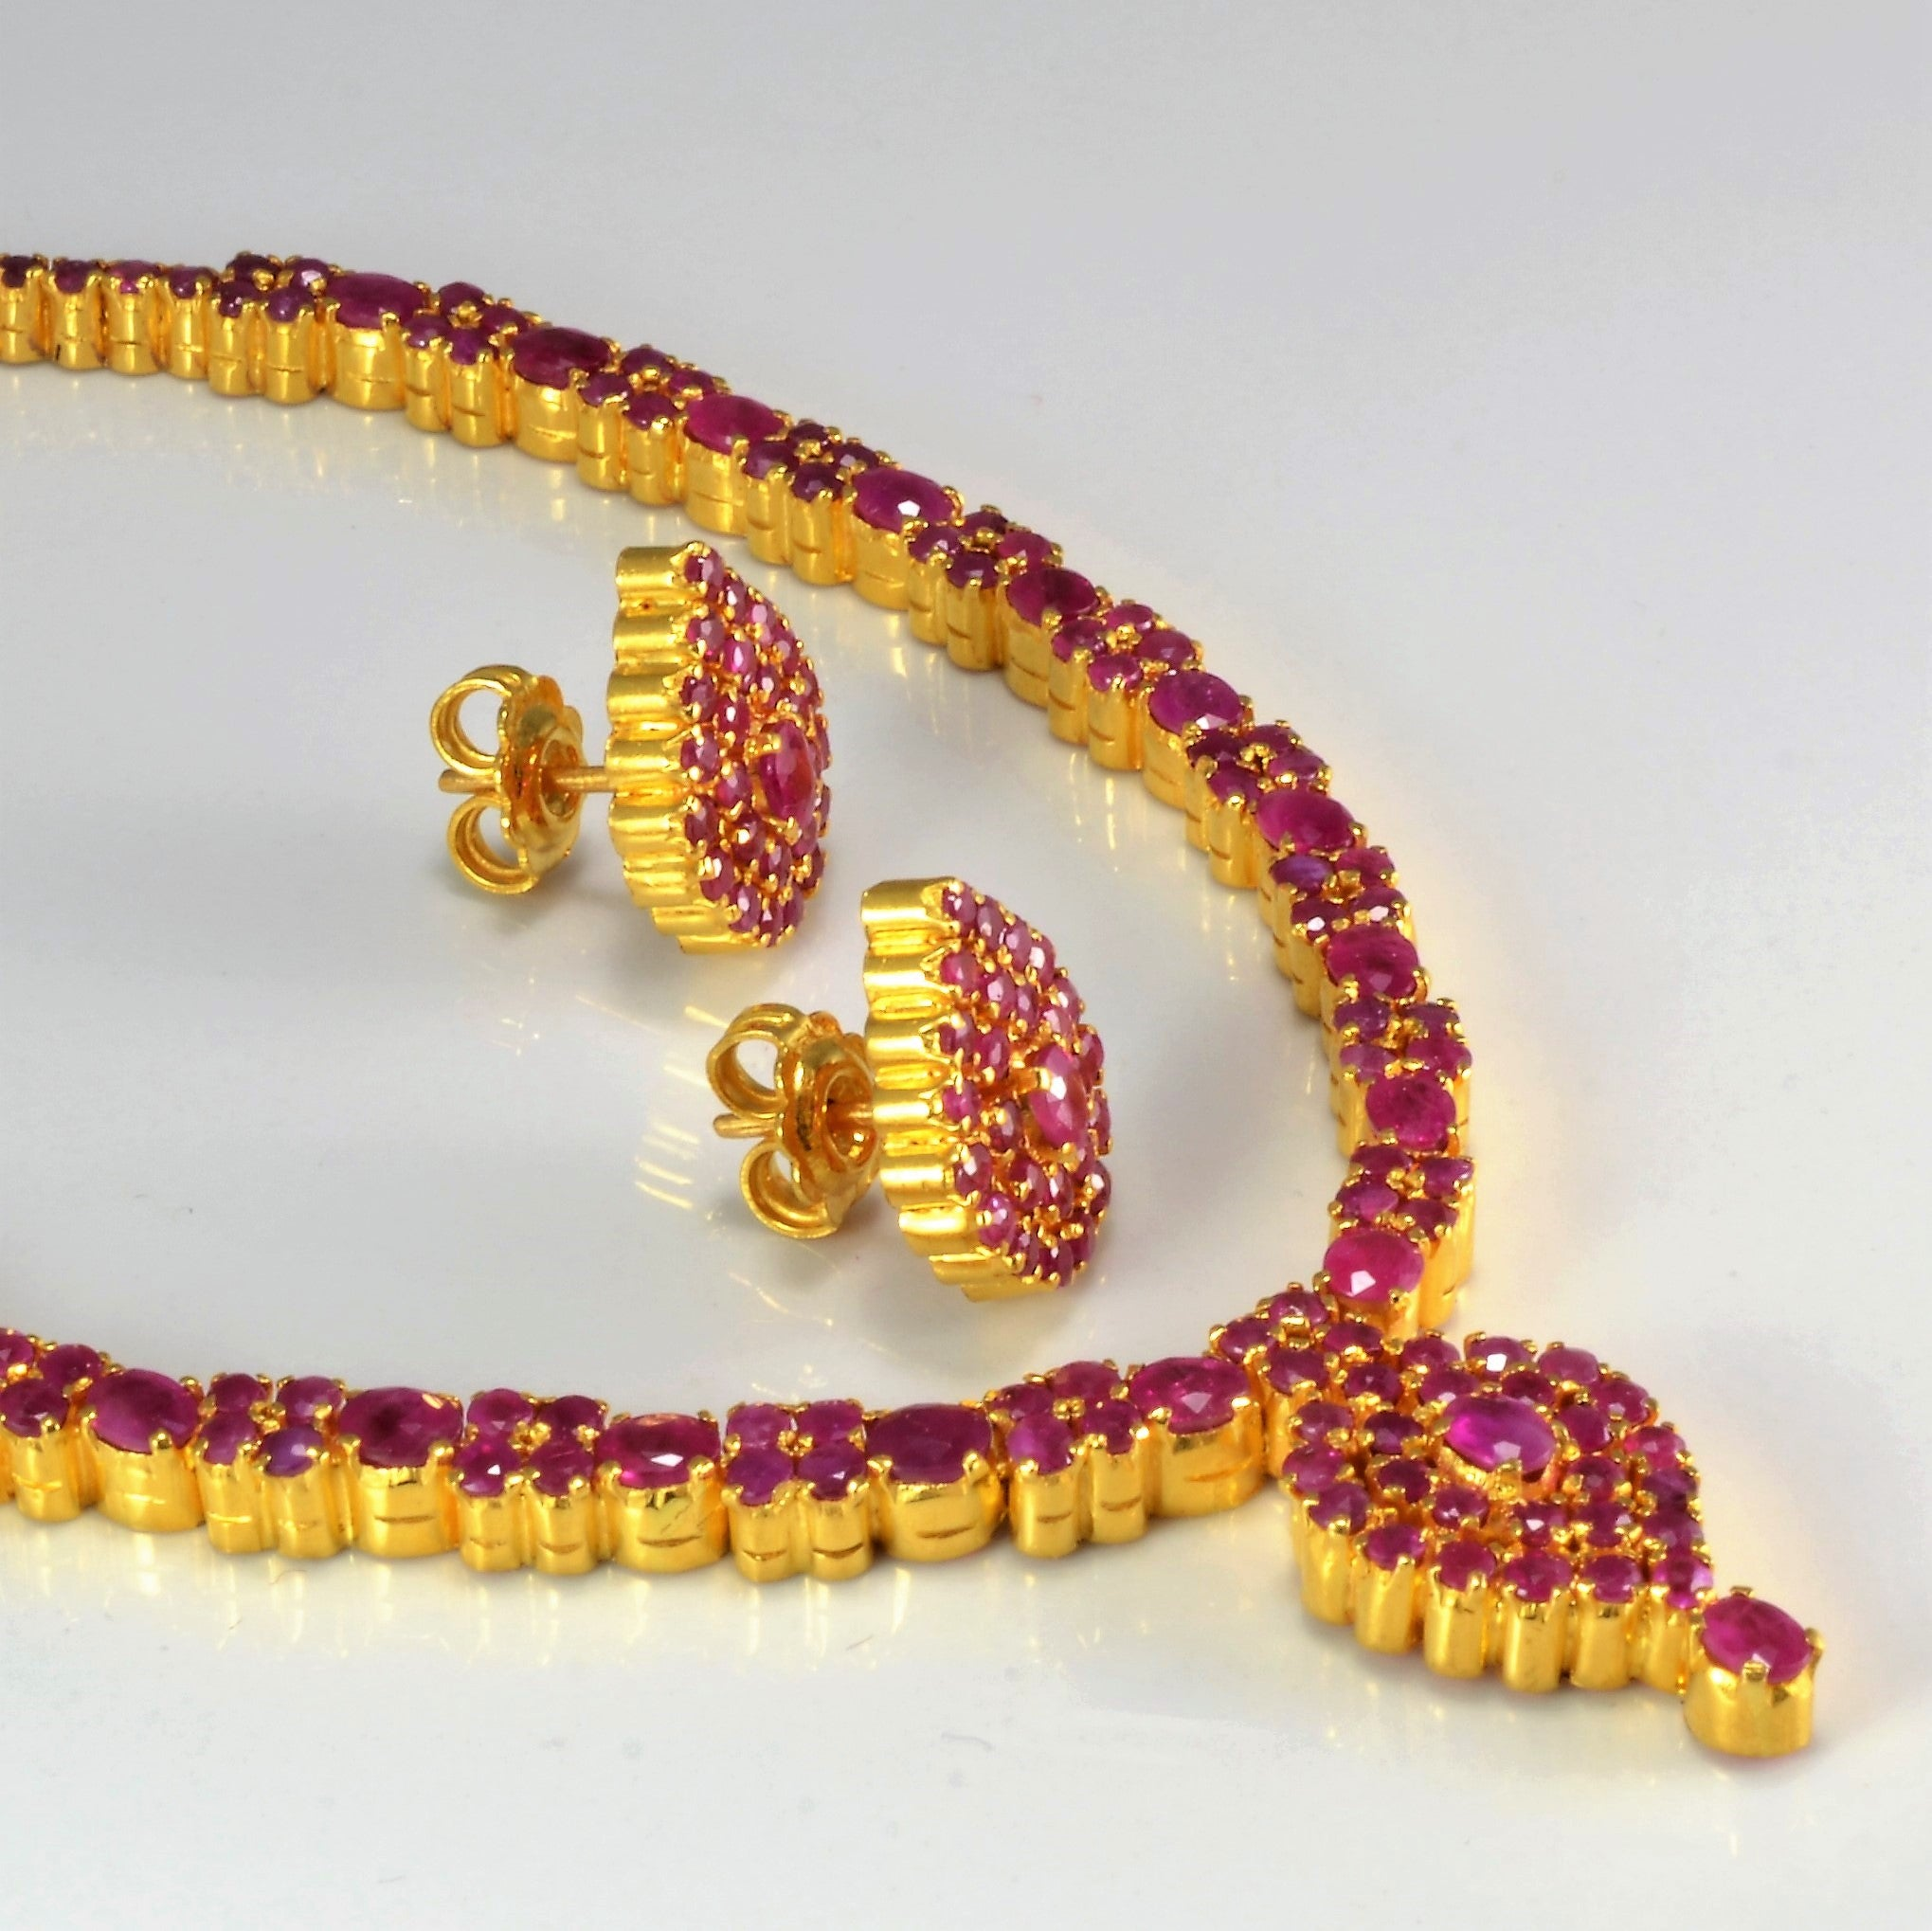 Elegant Ruby Necklace & Matching Earrings Set |16''|